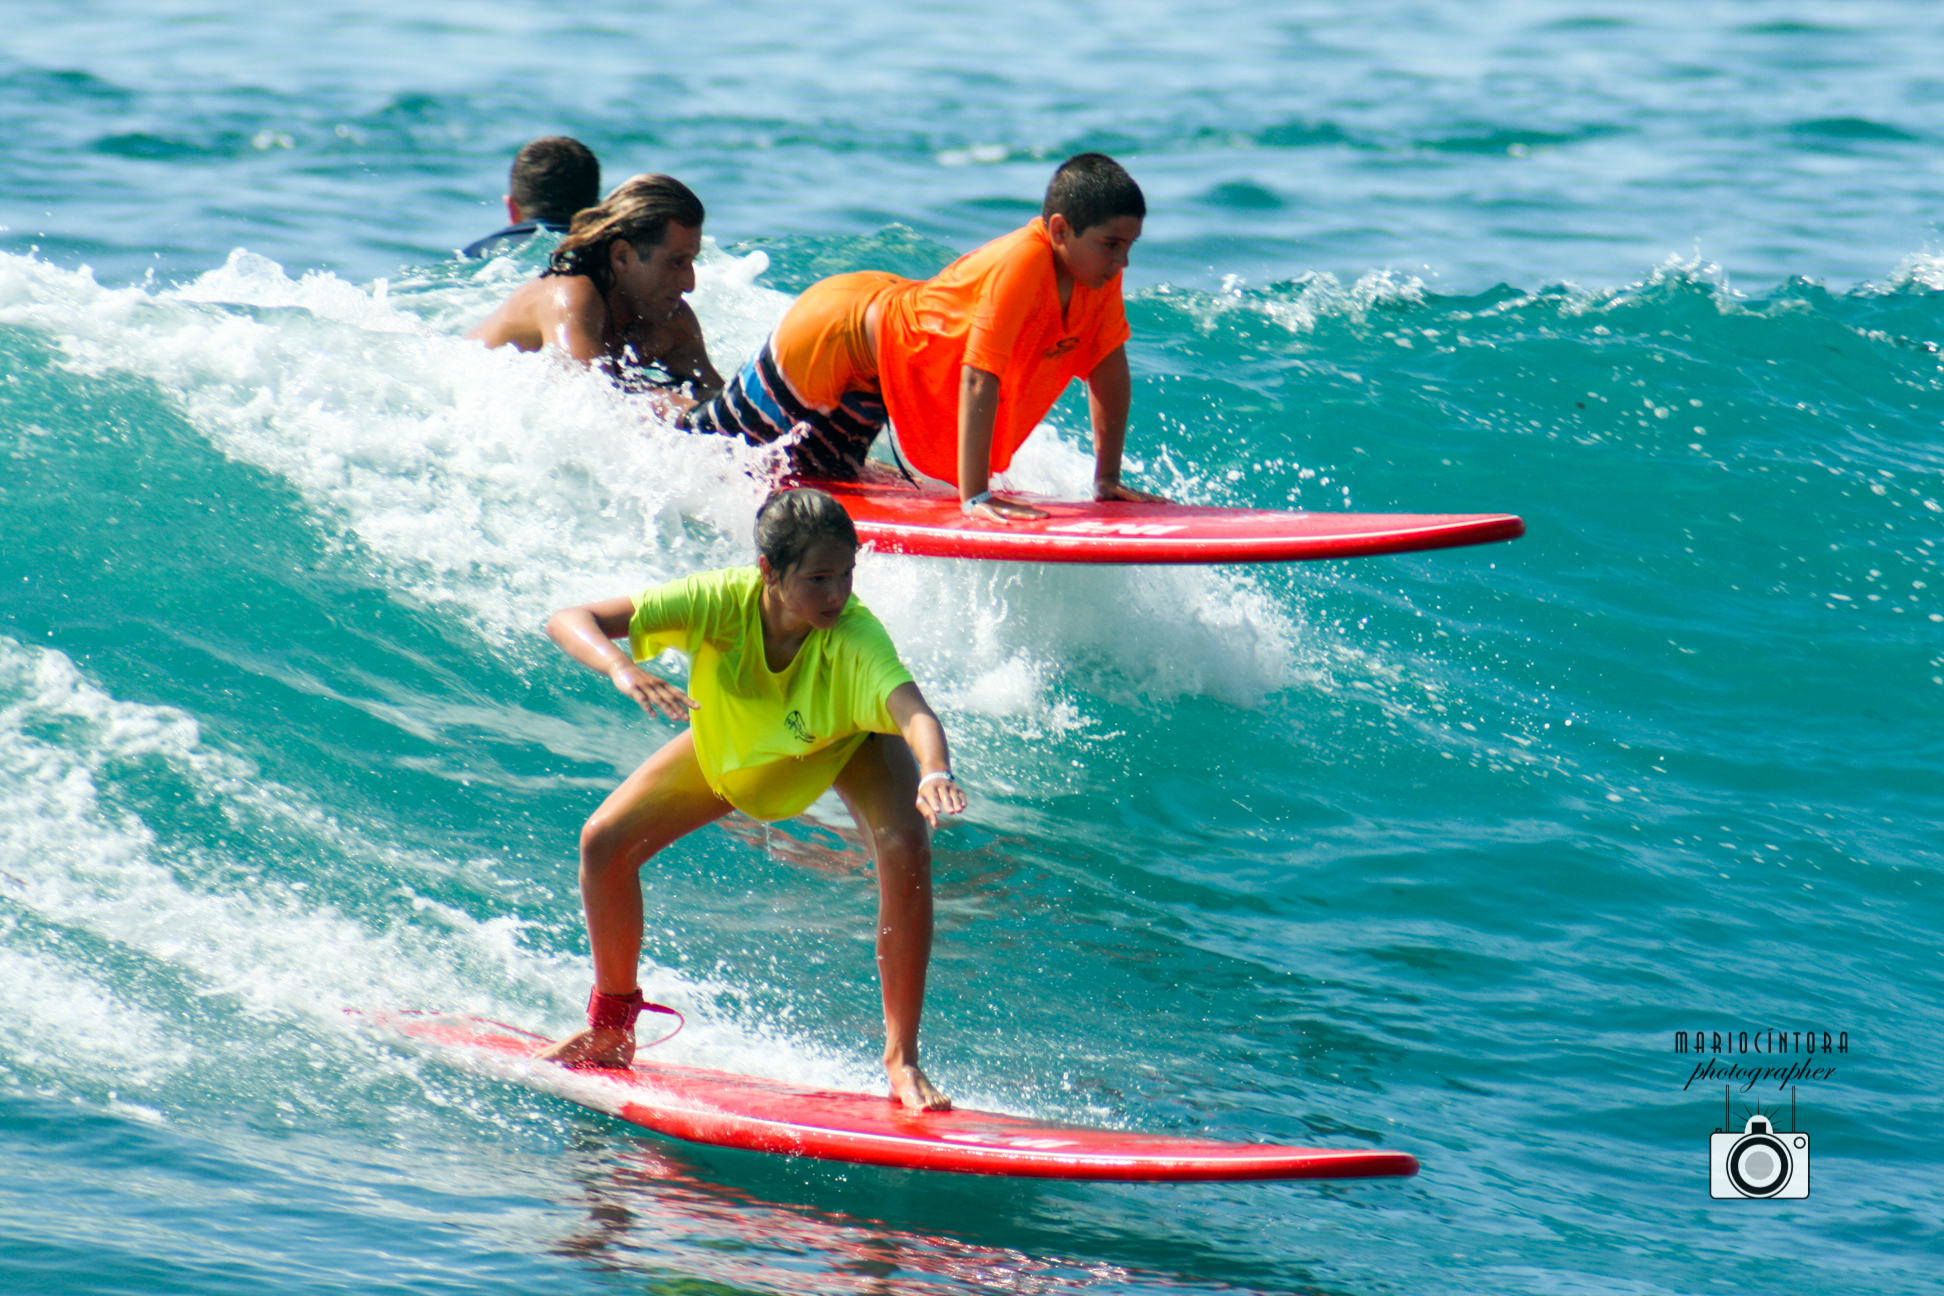 Los Cabos surf lessons at Costa Azul: Summer surfing Baja